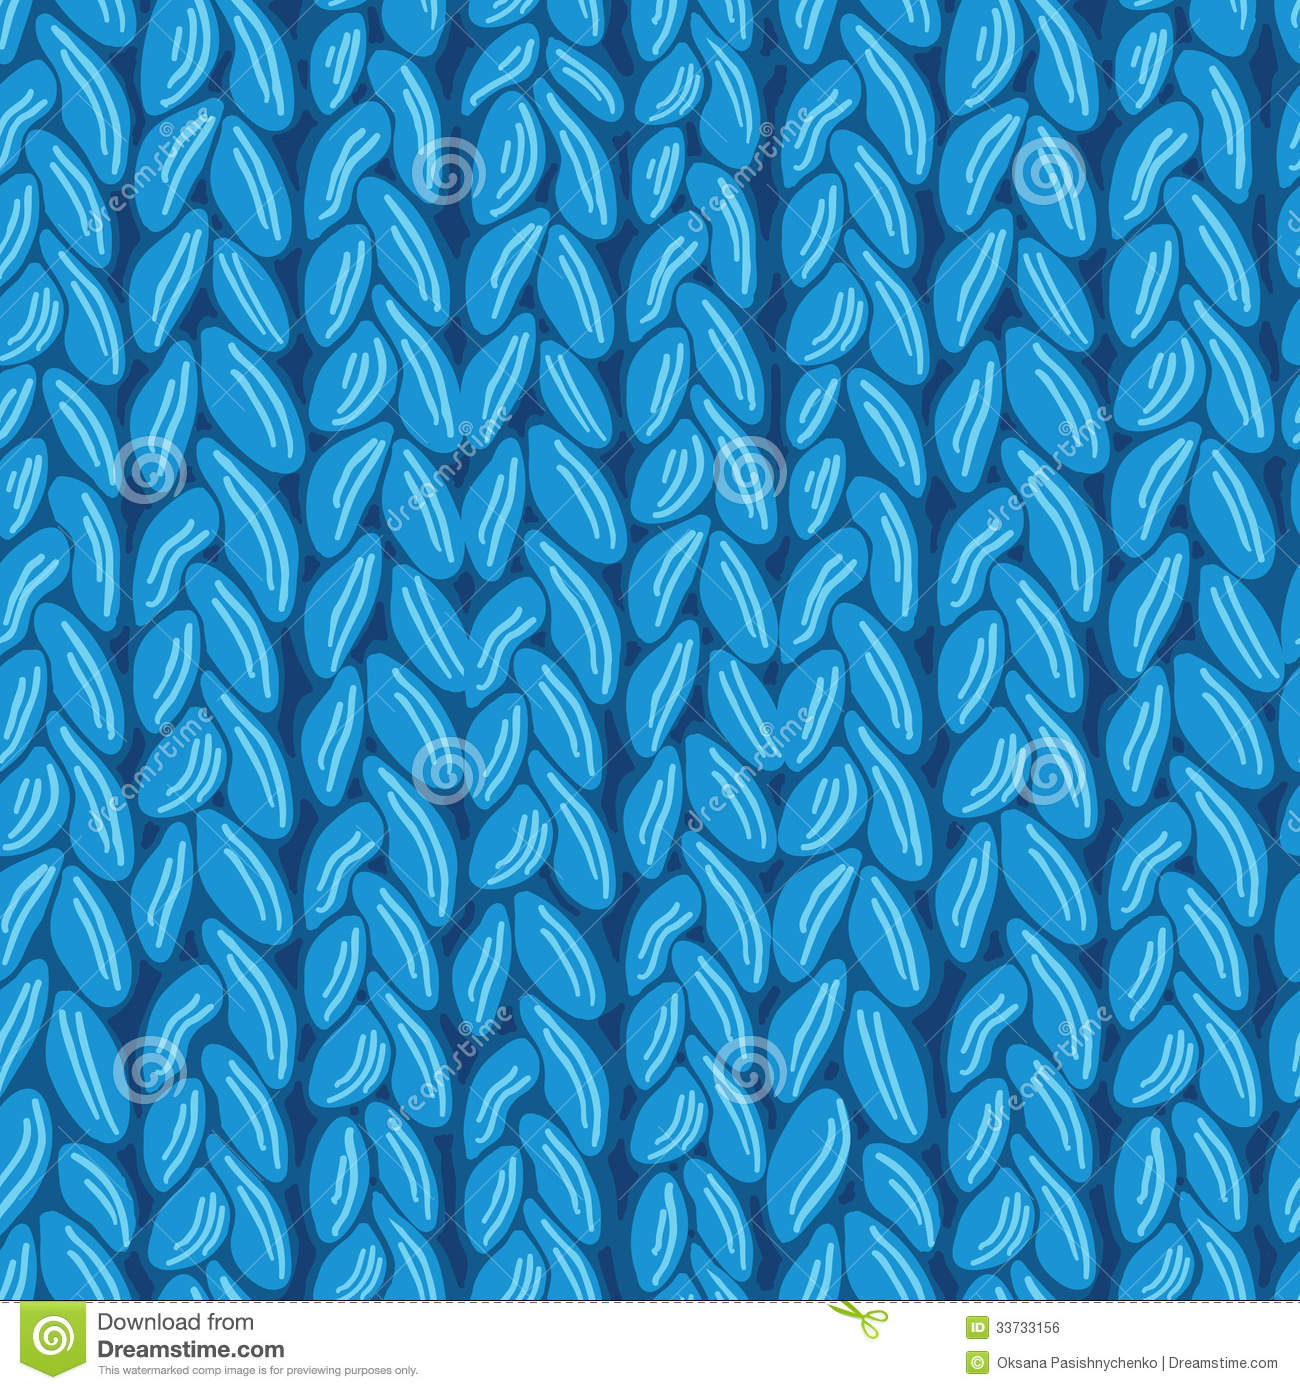 Patterns For Knit Fabric : Knit Sewater Fabric Seamless Pattern Texture Stock Vector - Image: 33733156